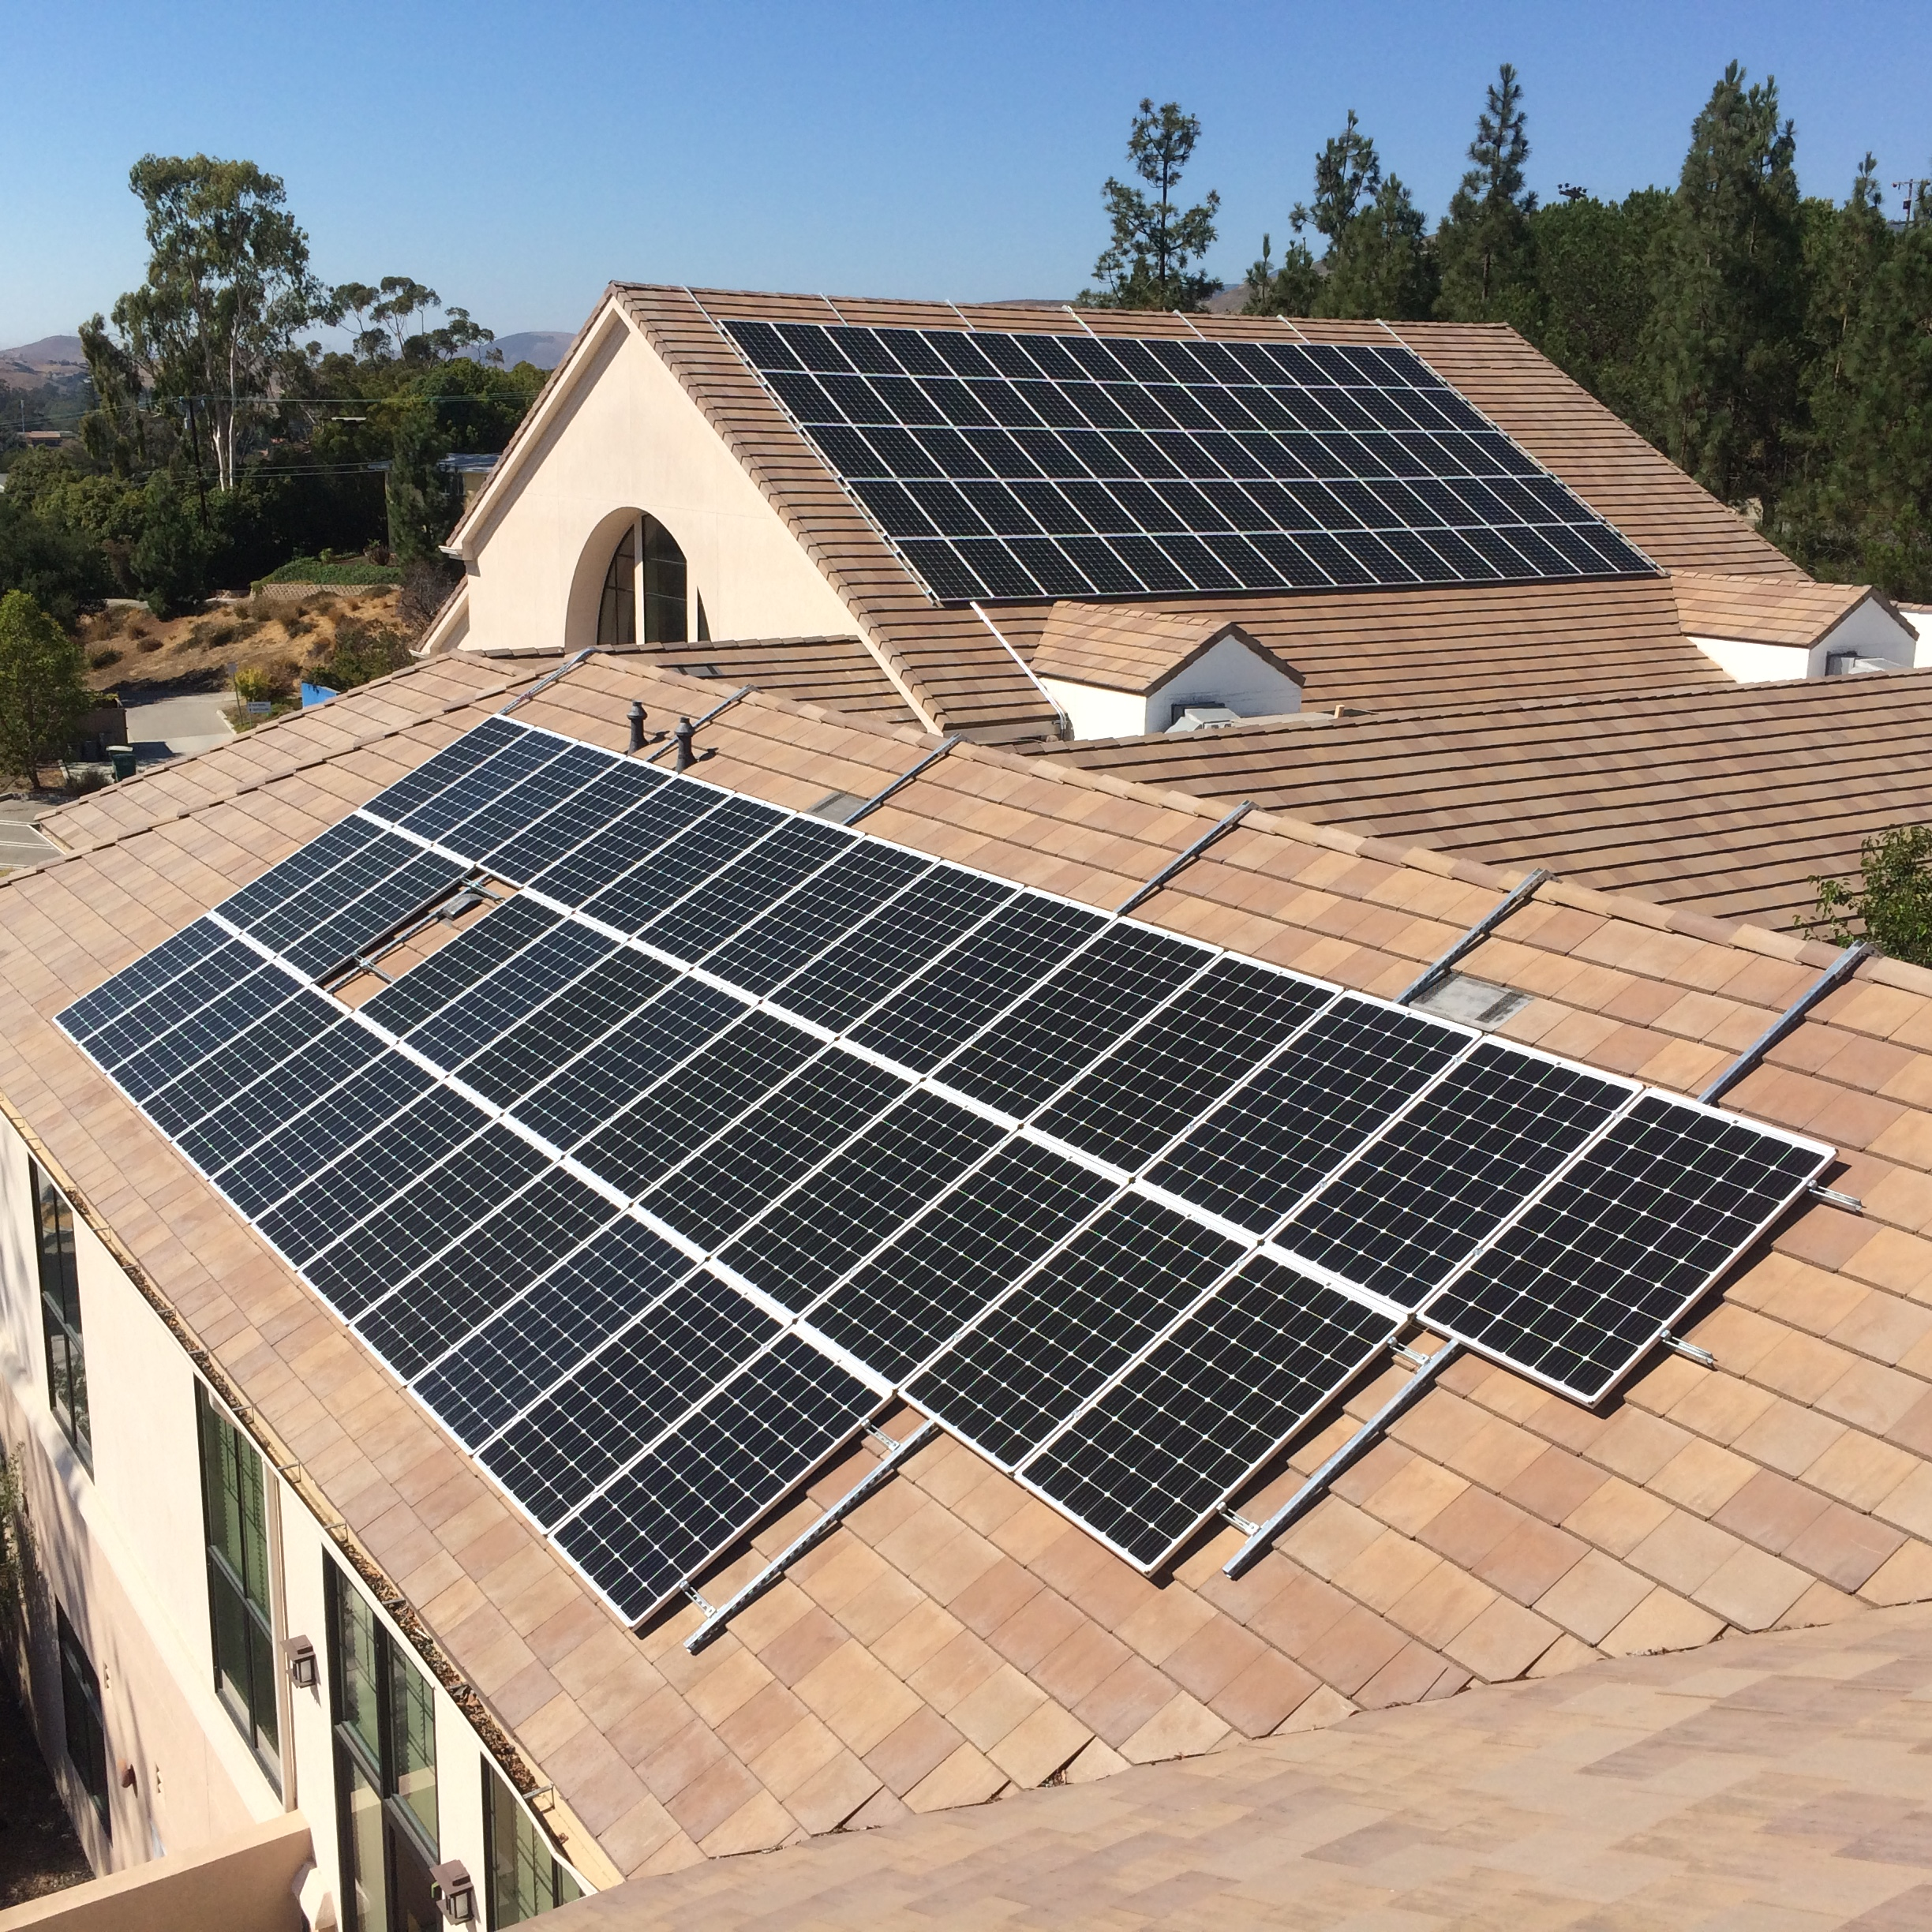 Is It Possible To Install Solar On A Sloped Roof Without Drilling Holes